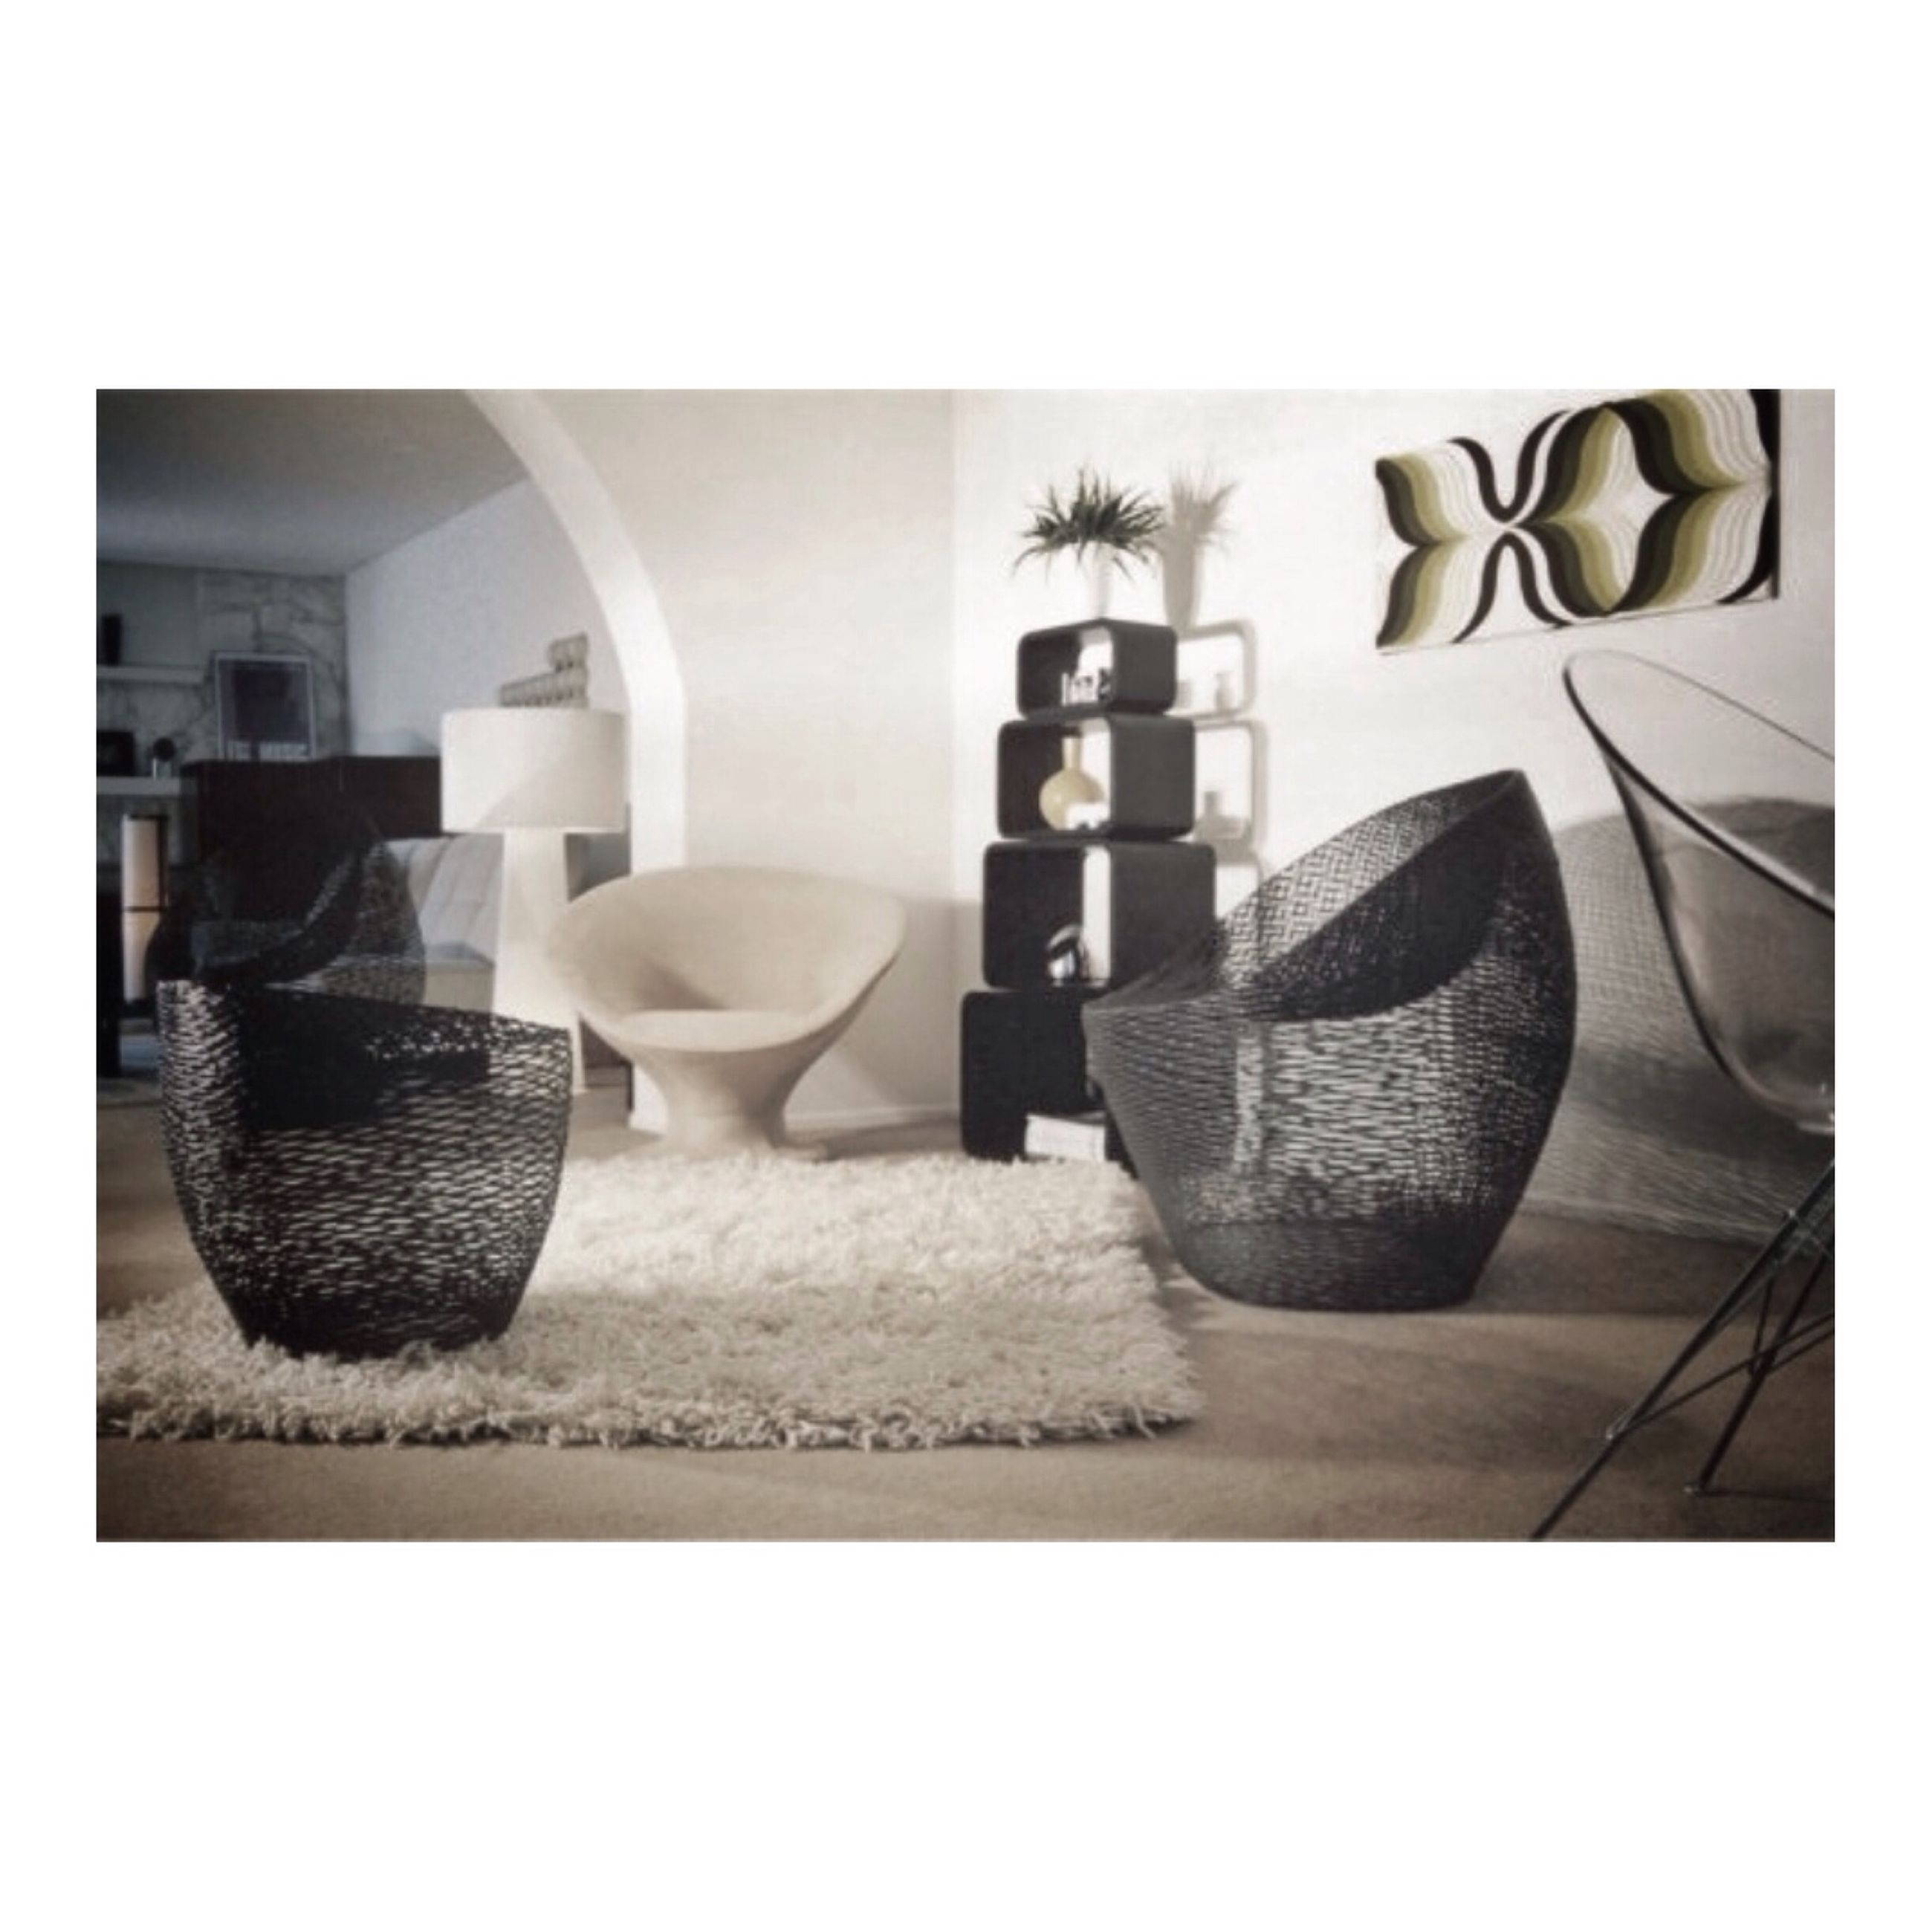 transfer print, auto post production filter, indoors, table, still life, empty, absence, chair, no people, arrangement, group of objects, large group of objects, close-up, reflection, in a row, day, side by side, book, home interior, wall - building feature